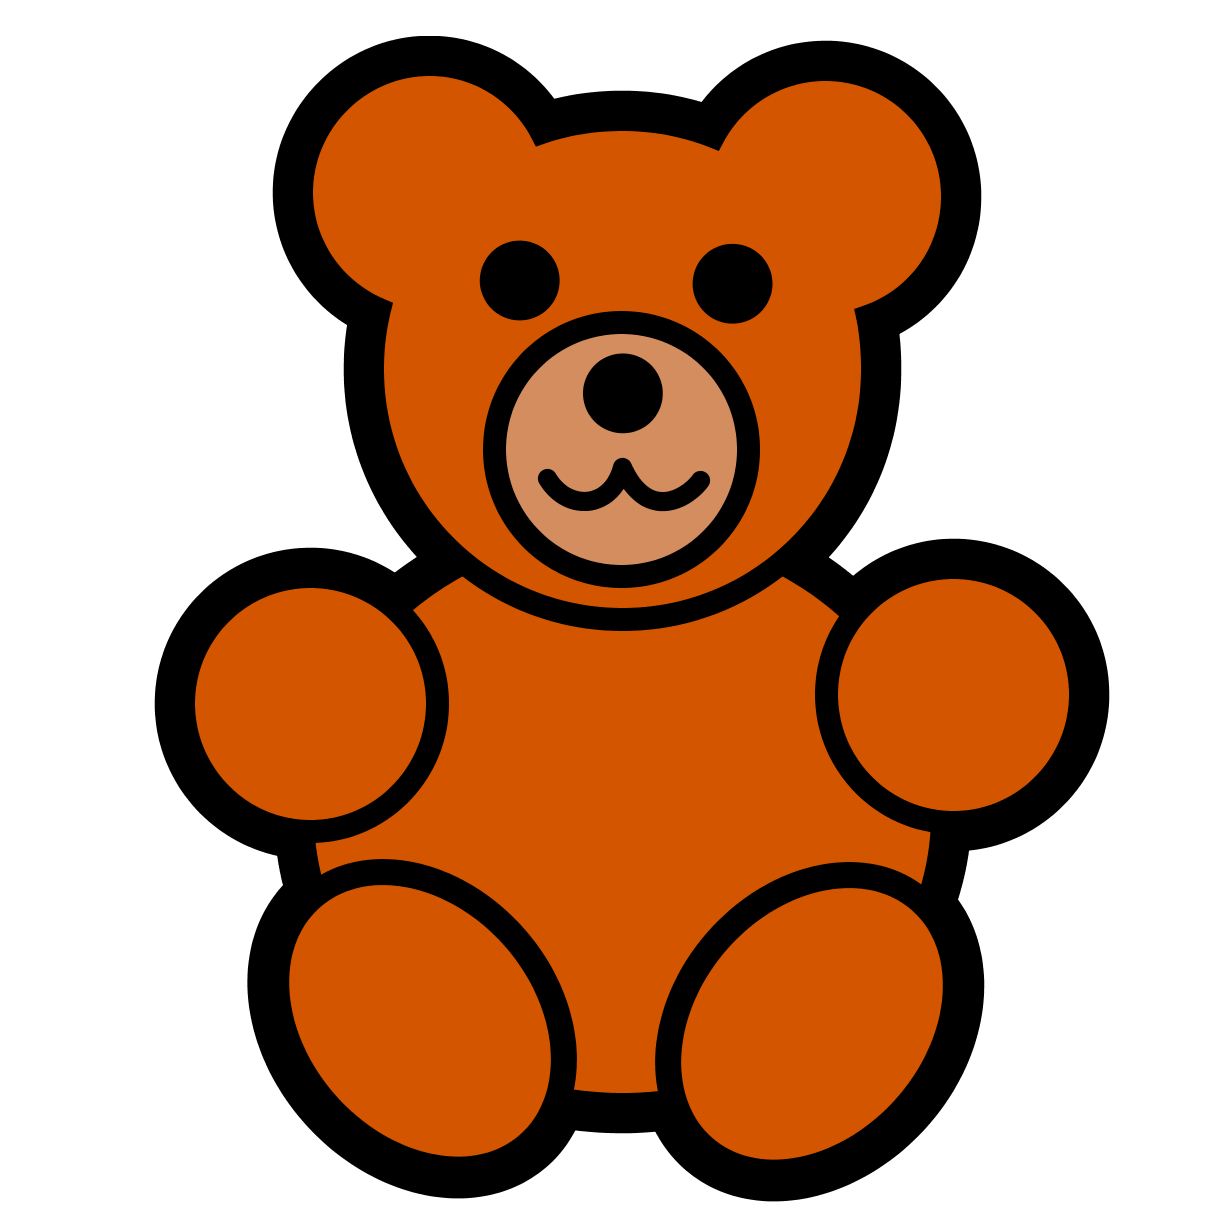 svg royalty free library Clip art large images. Teddy bear clipart free